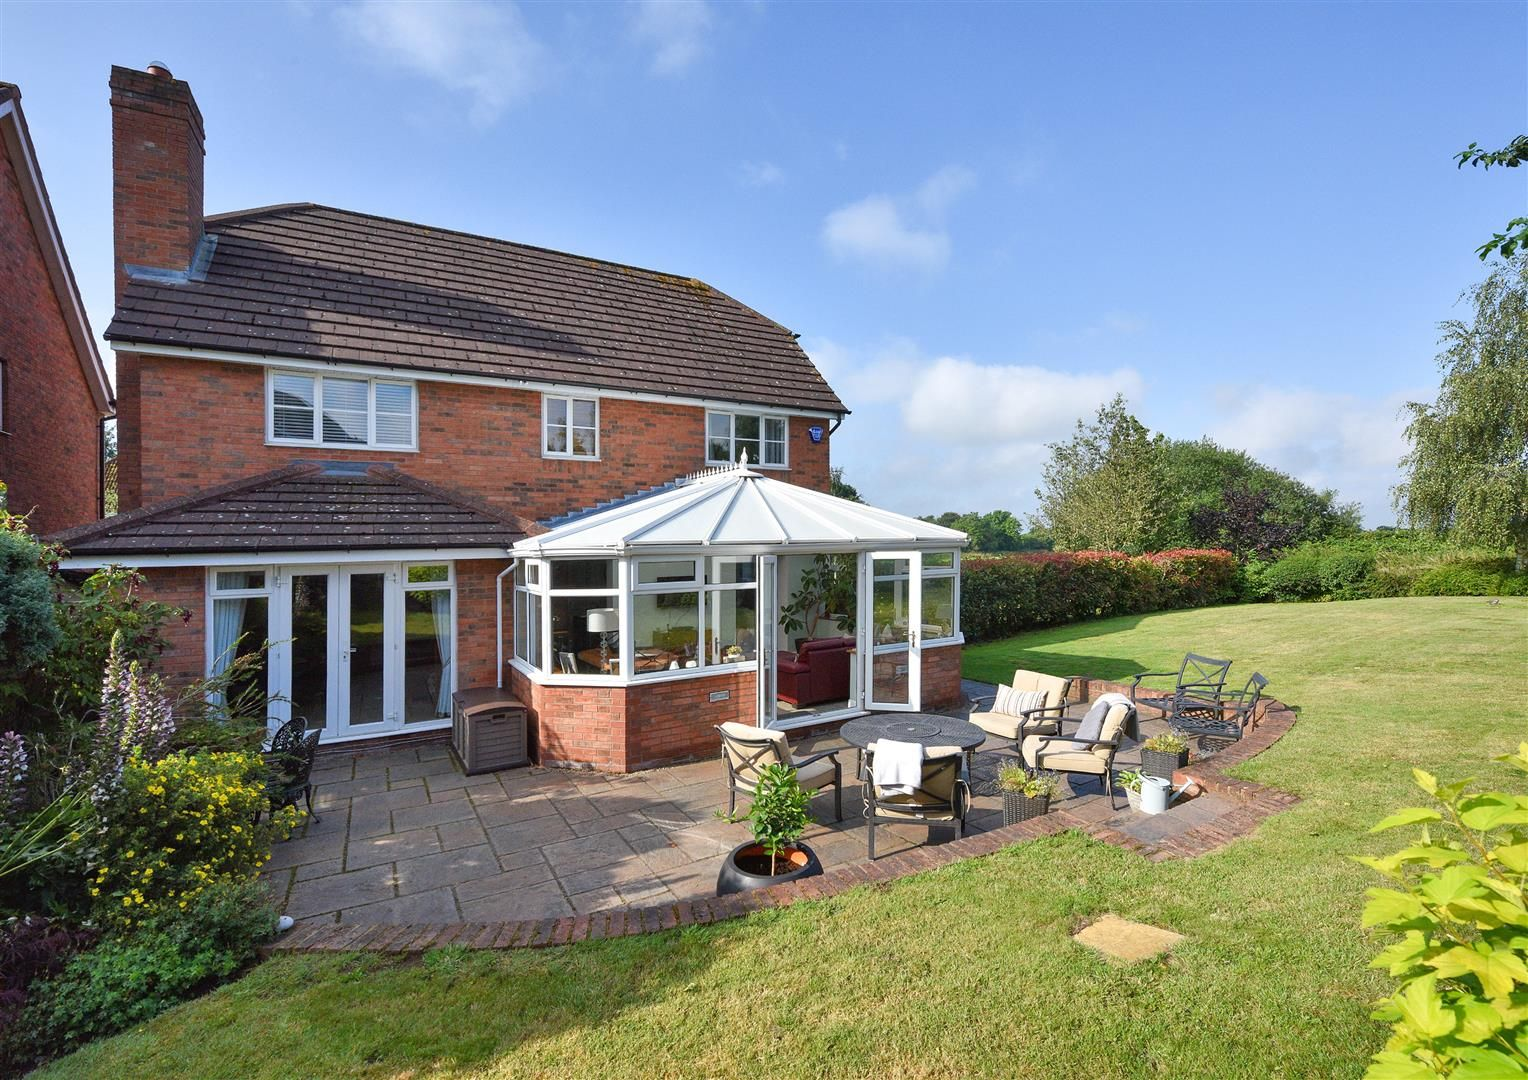 5 bed house for sale in Hagley 21